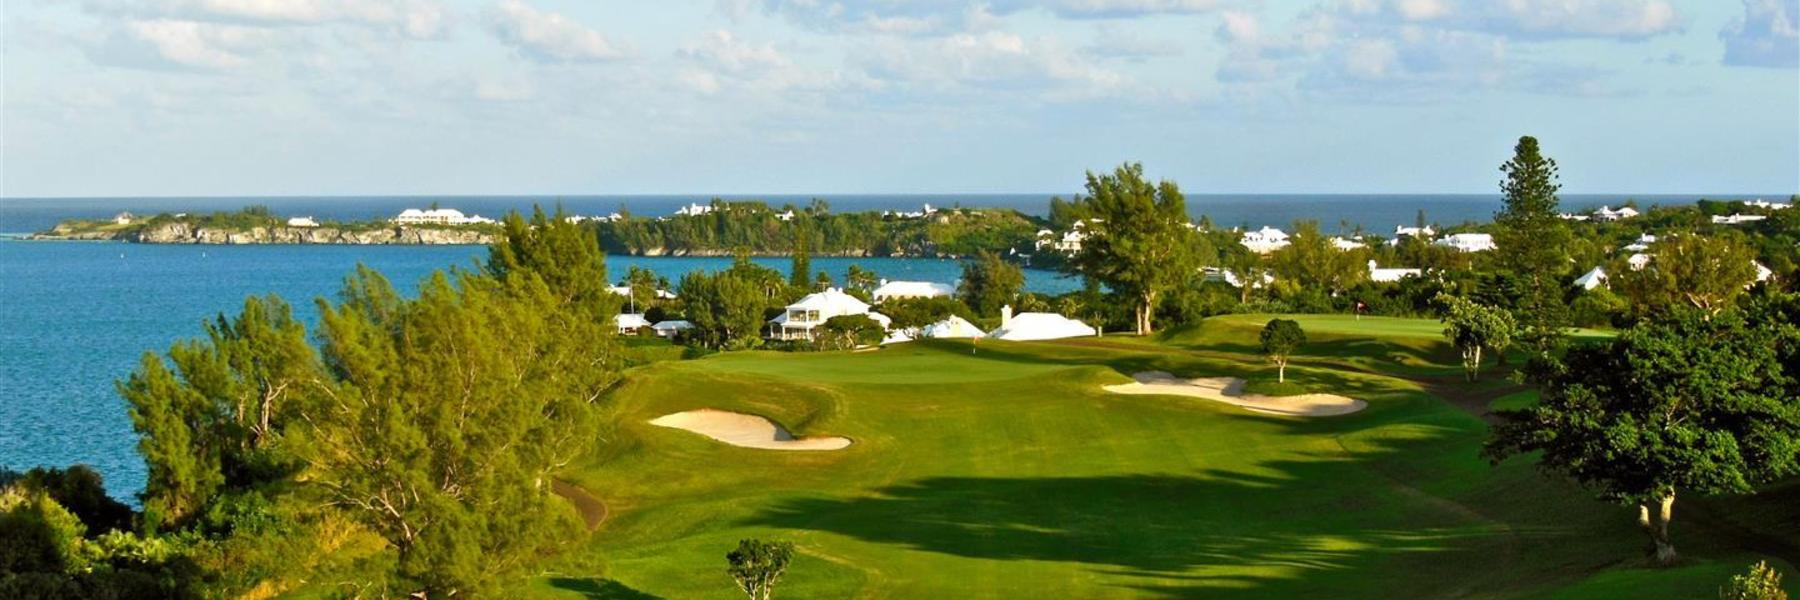 Golf Vacation Package - Fairmont Southampton Bermuda Golf Around Getaway for $352 per day!